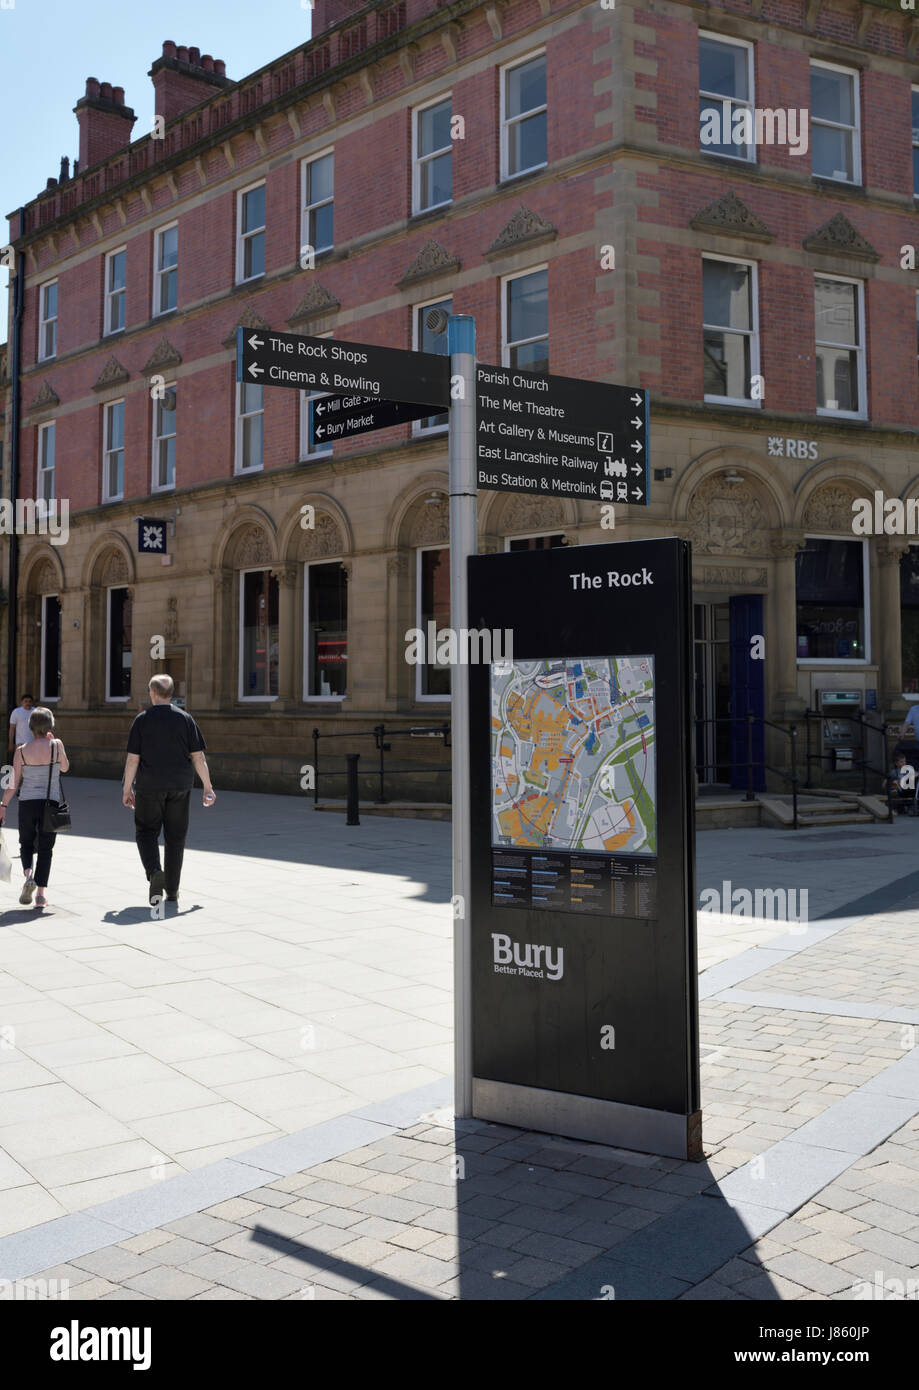 Fingerpost and street signage the rock in bury lancashire - Stock Image